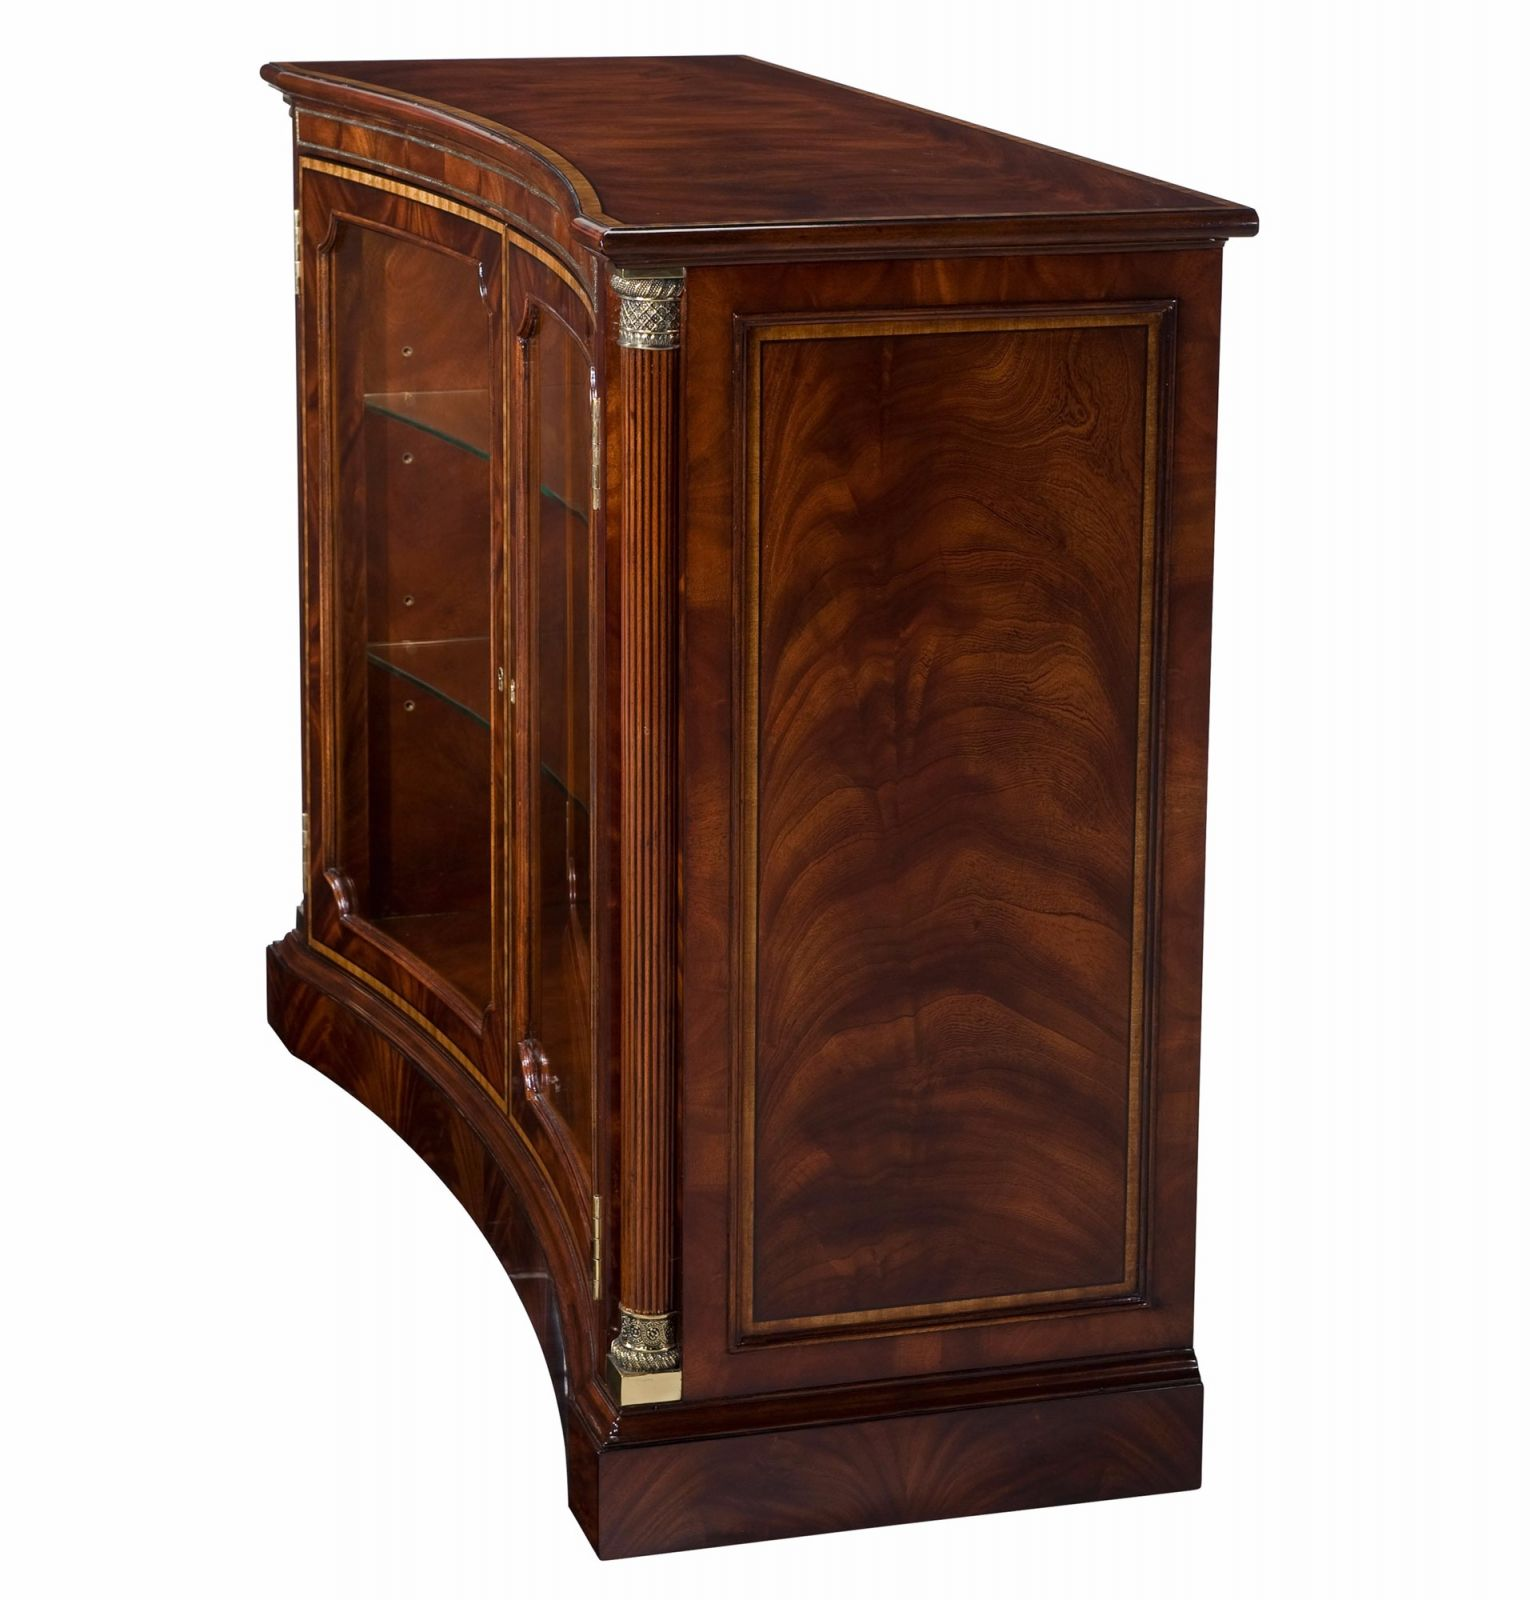 Mahogany and satinwood crossbanded side cabinet